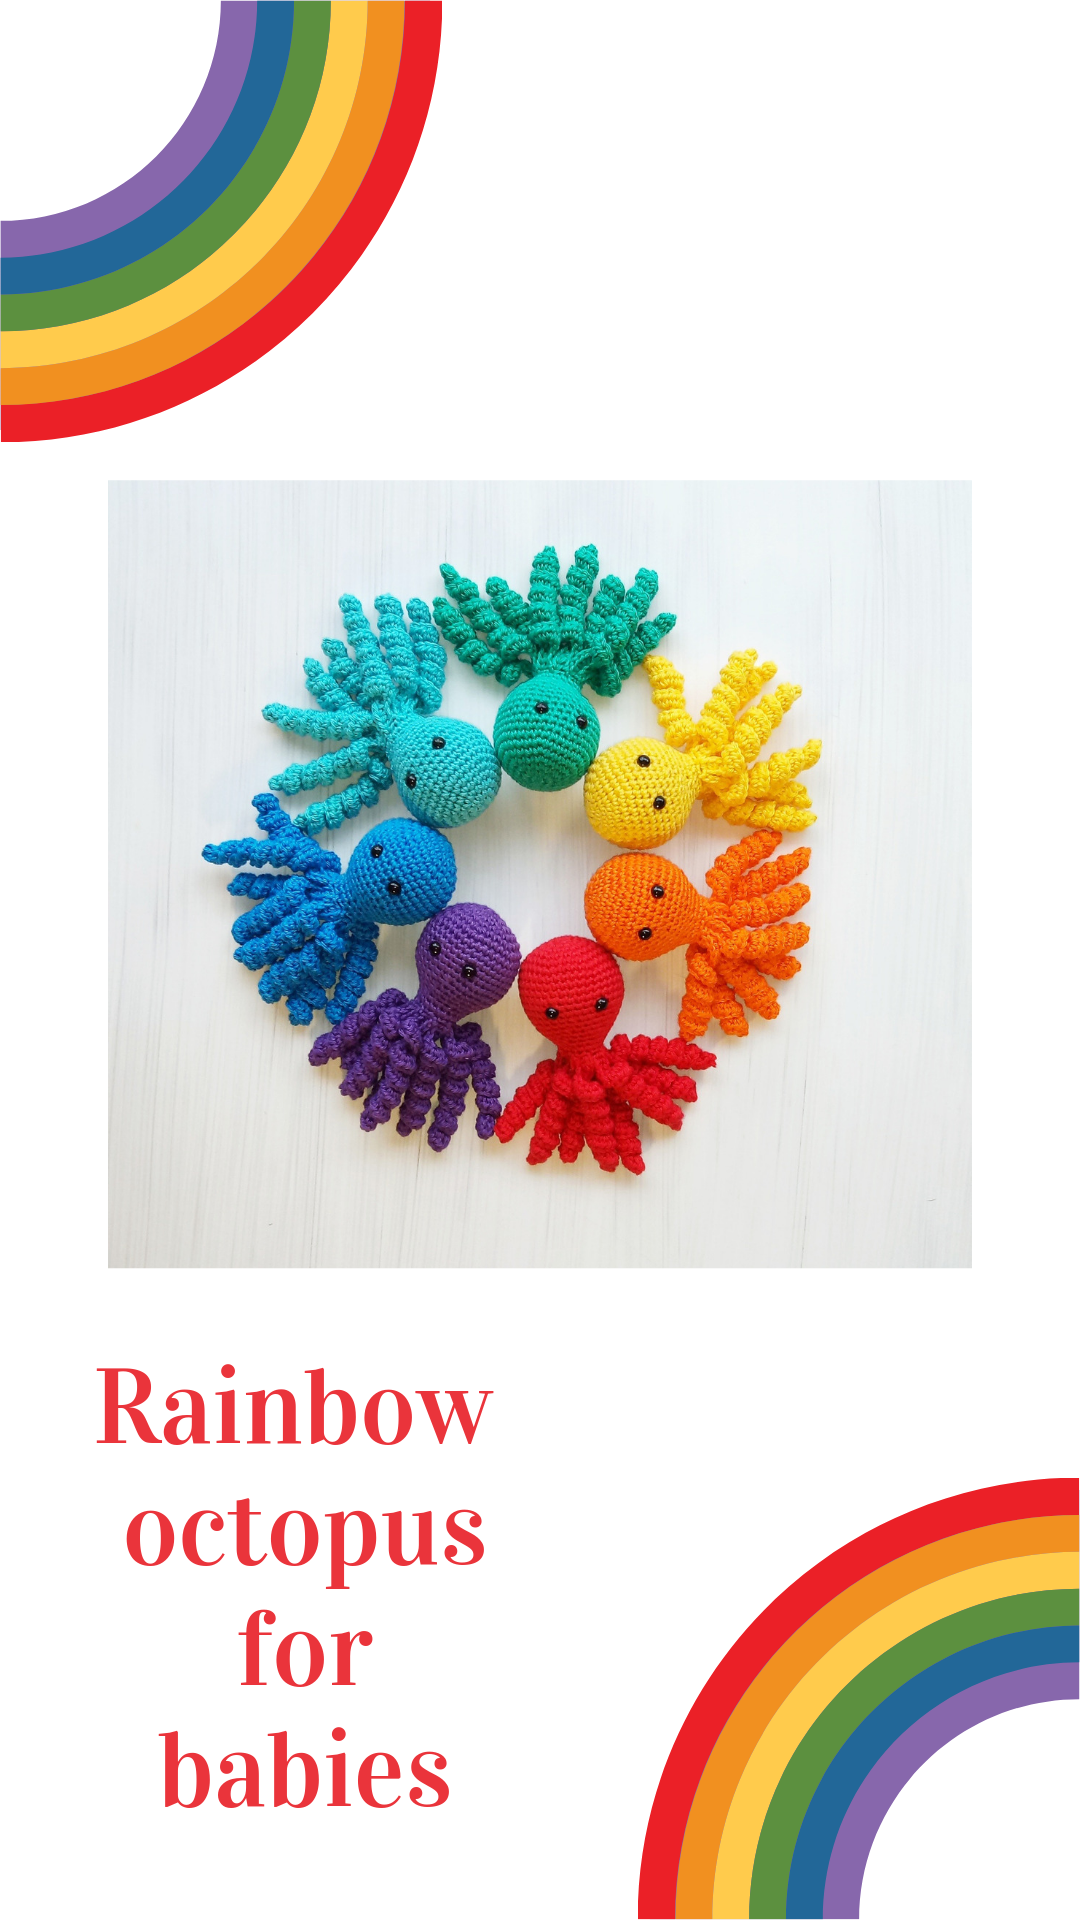 small rainbow octopus for premature babies